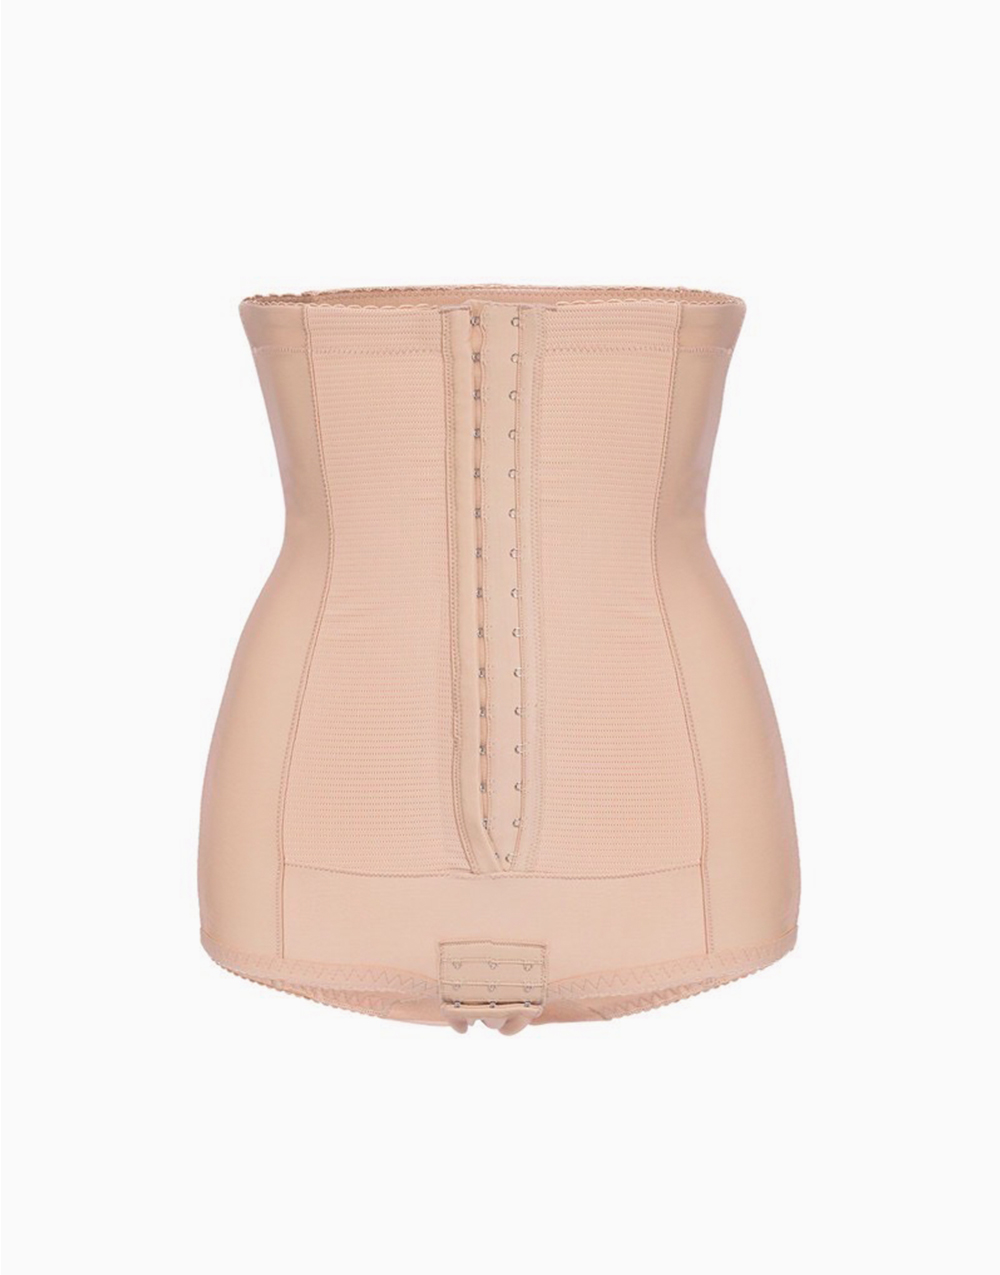 DIANNE Post Partum Recovery Shapewear - Nude by Shapewear Solutions | 3XL